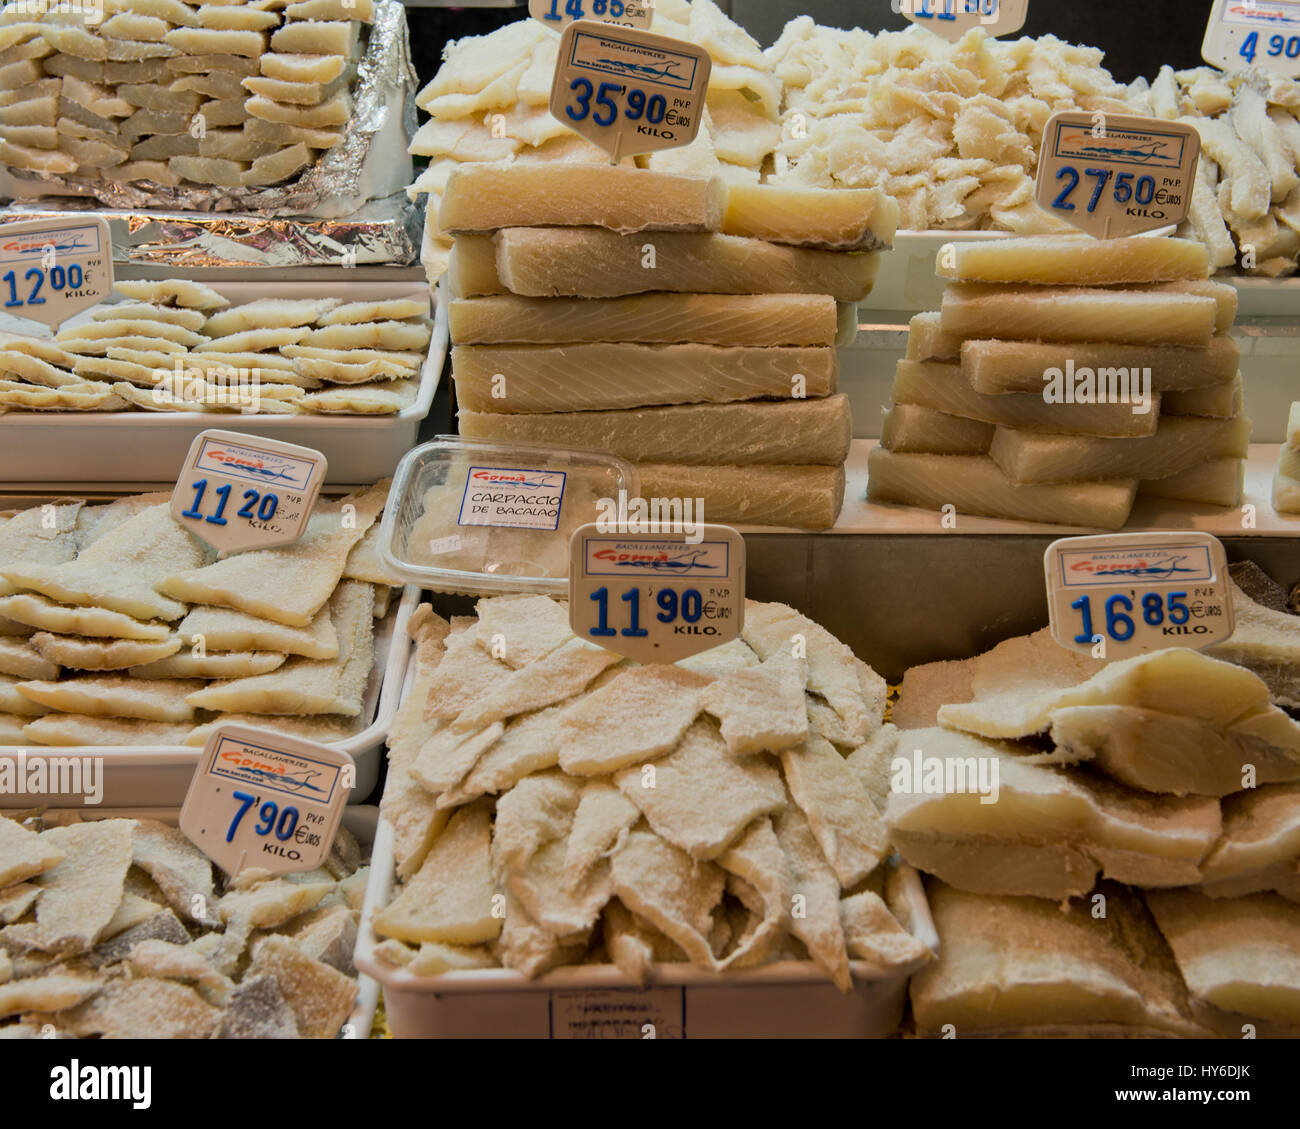 Dried fish on sale at a market stand at La Boqueria Market, Las Ramblas, Barcelona, Catalonia, Spain - Stock Image